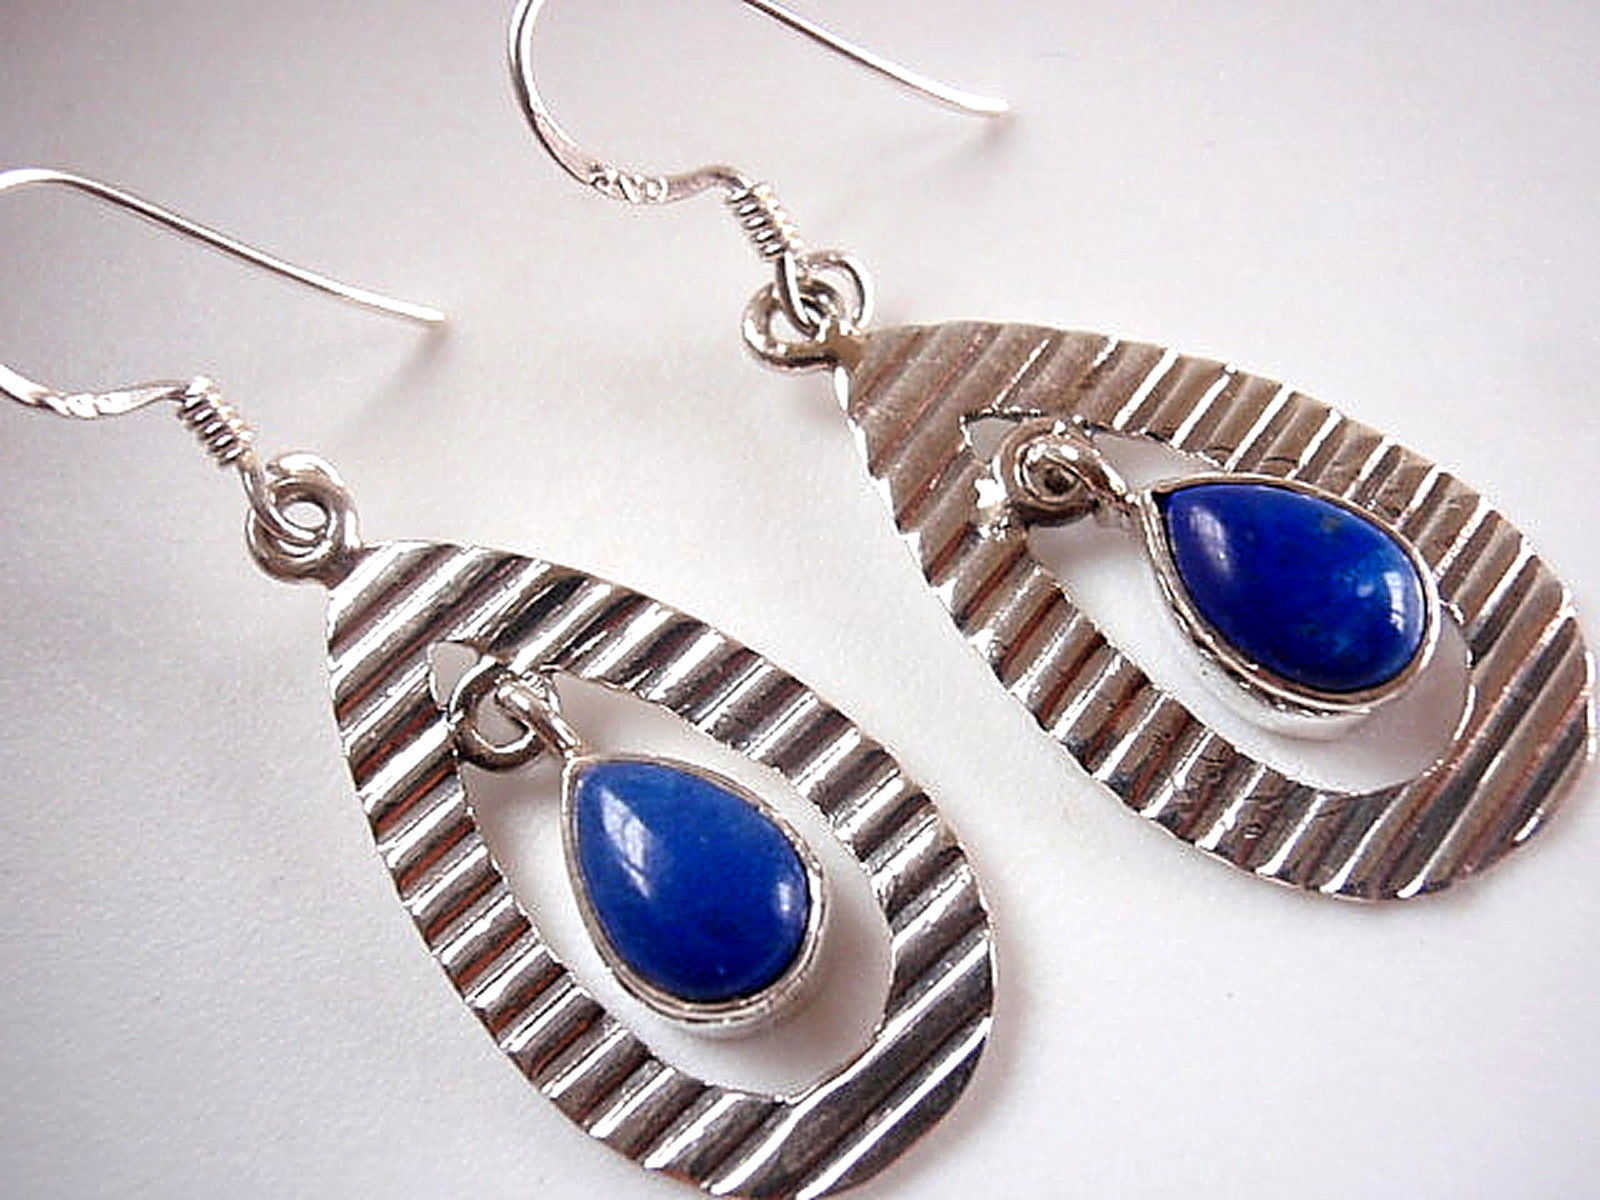 Primary image for Lapis Lazuli Grooved Hoop Dangling 925 Sterling Silver Dangle Earrings New